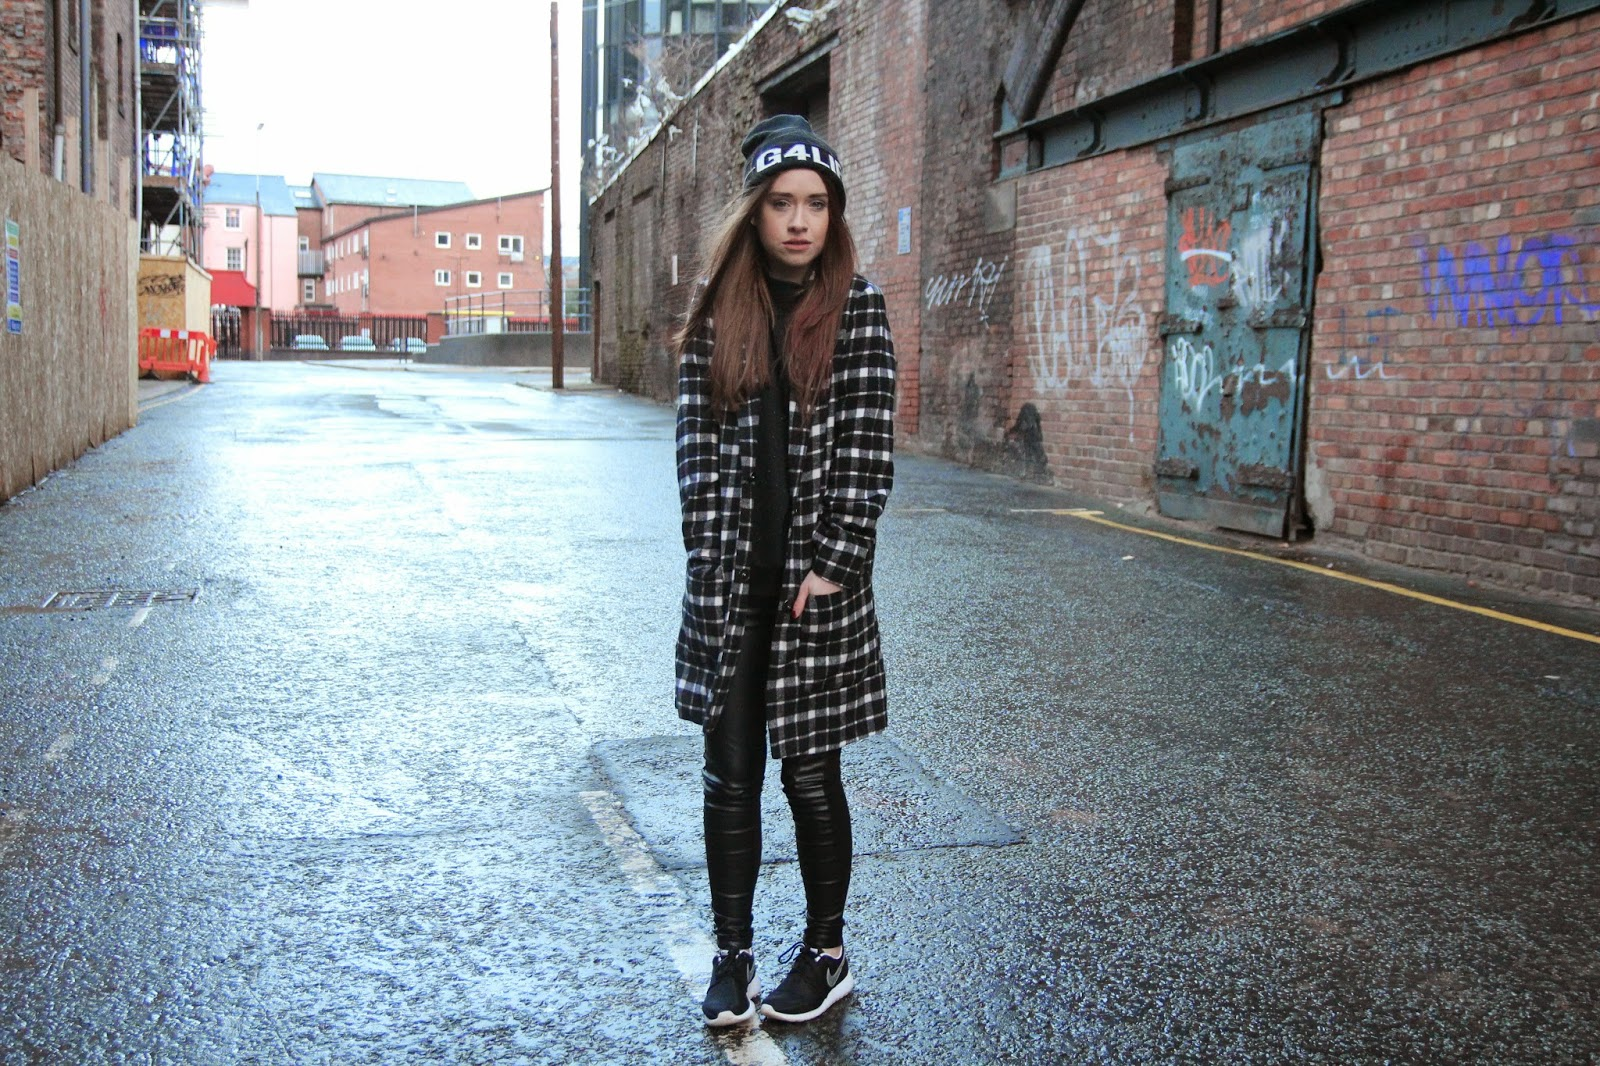 monochrome, nike, fashion blogger, fashion, blogger, fblog, fblogger, urban style, street style